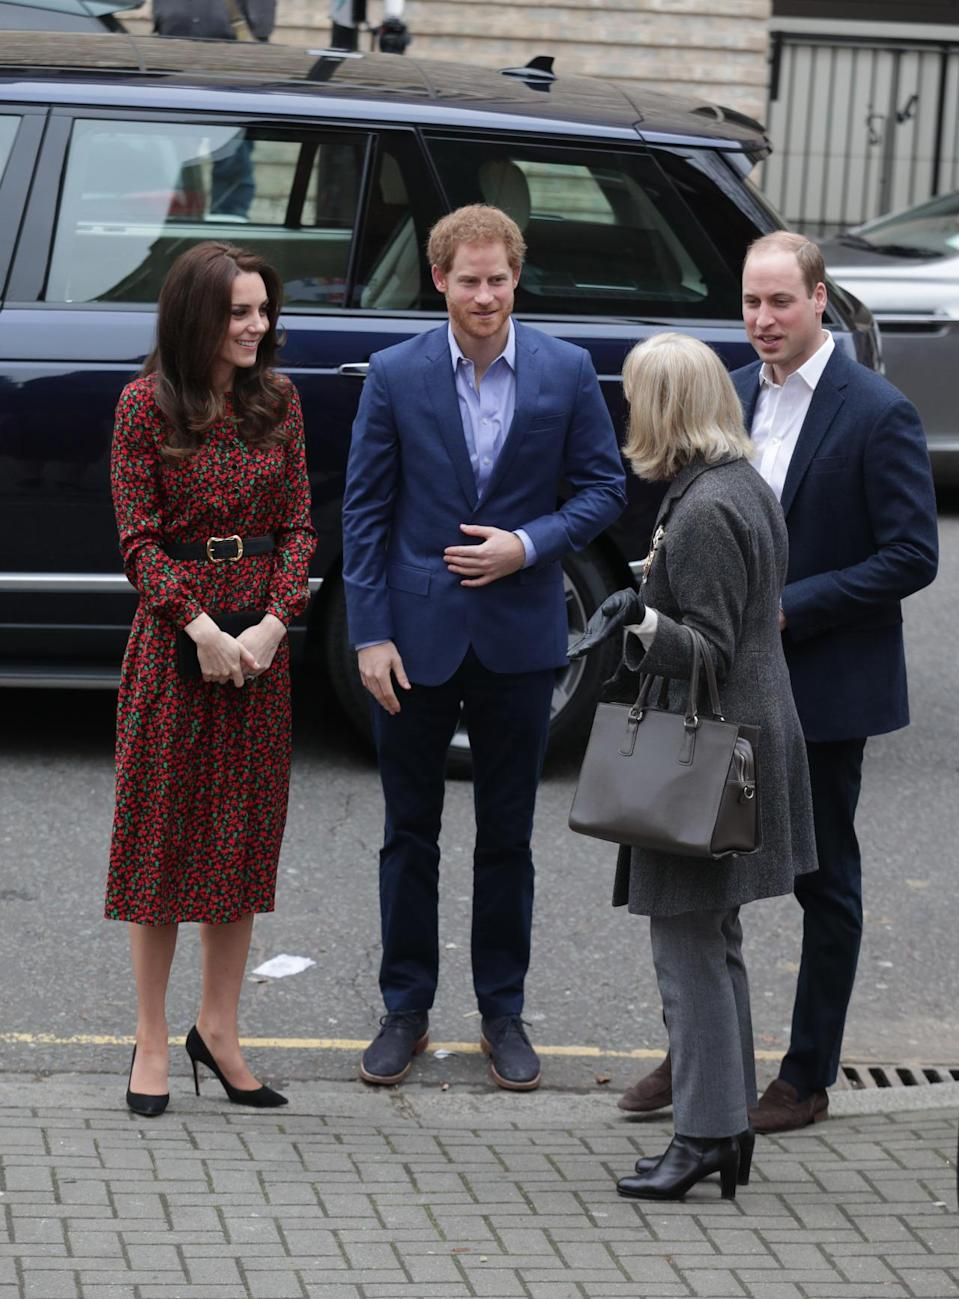 <p>Kate dressed for the festive period in a red-and-green printed midi design by Vanessa Seward. Costing £720, the Duchess wore the look to a charity Christmas party, pairing it with a waist-cinching belt and black heels. This is the first time she has worn the designer, adding yet another stylish name to her ever-growing wardrobe. </p><p><i>[Photo: PA]</i></p>